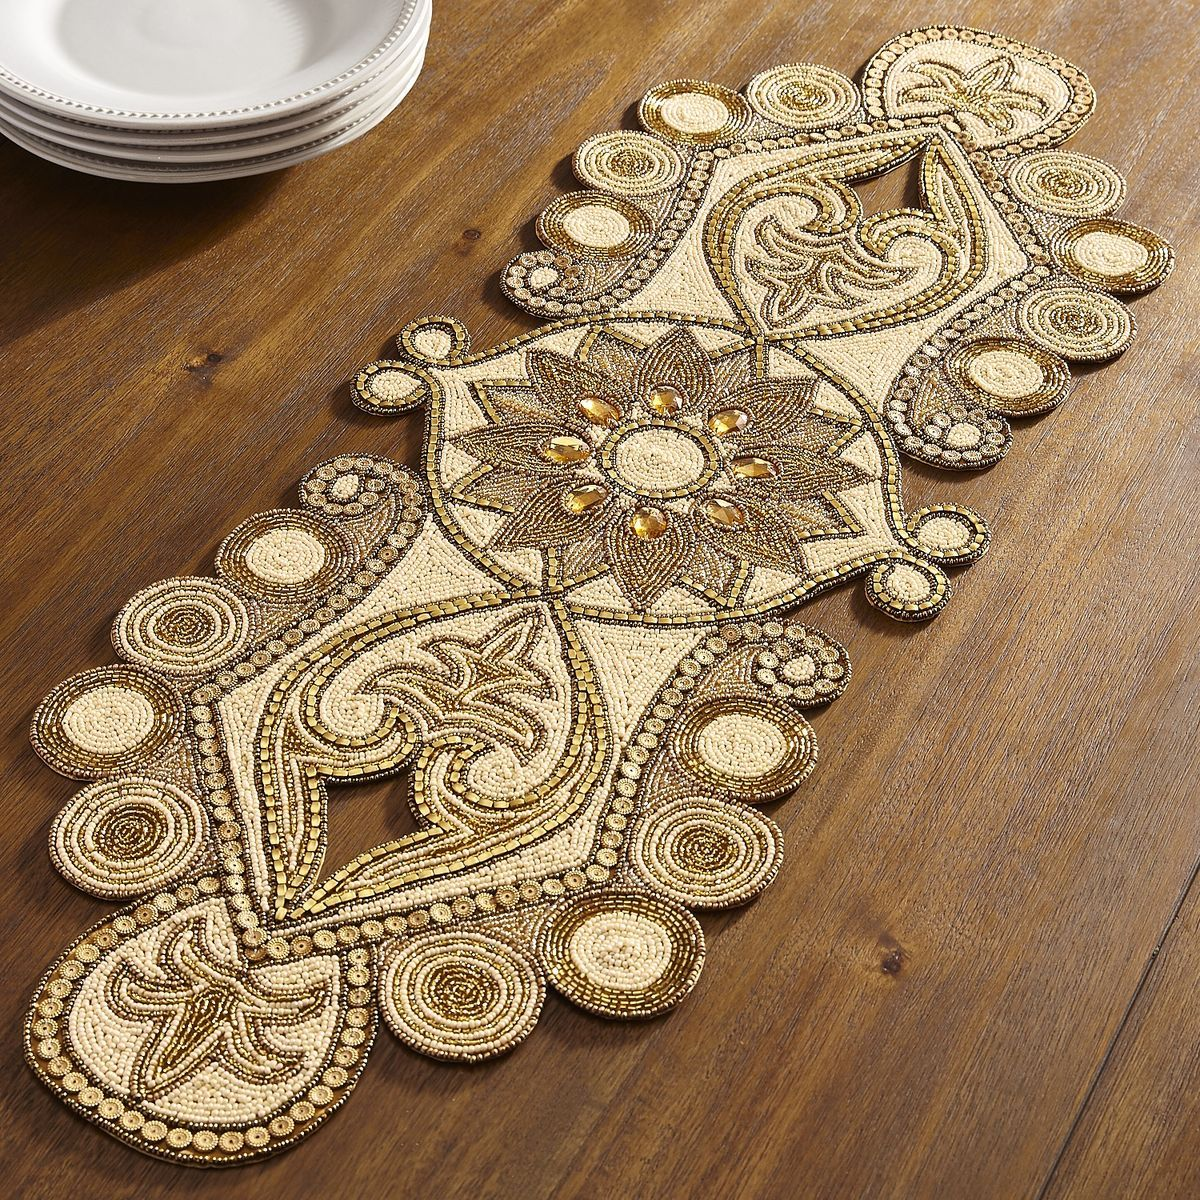 Golden Triumph Beaded Table Runner Pier 1 Imports Boncuk Isi